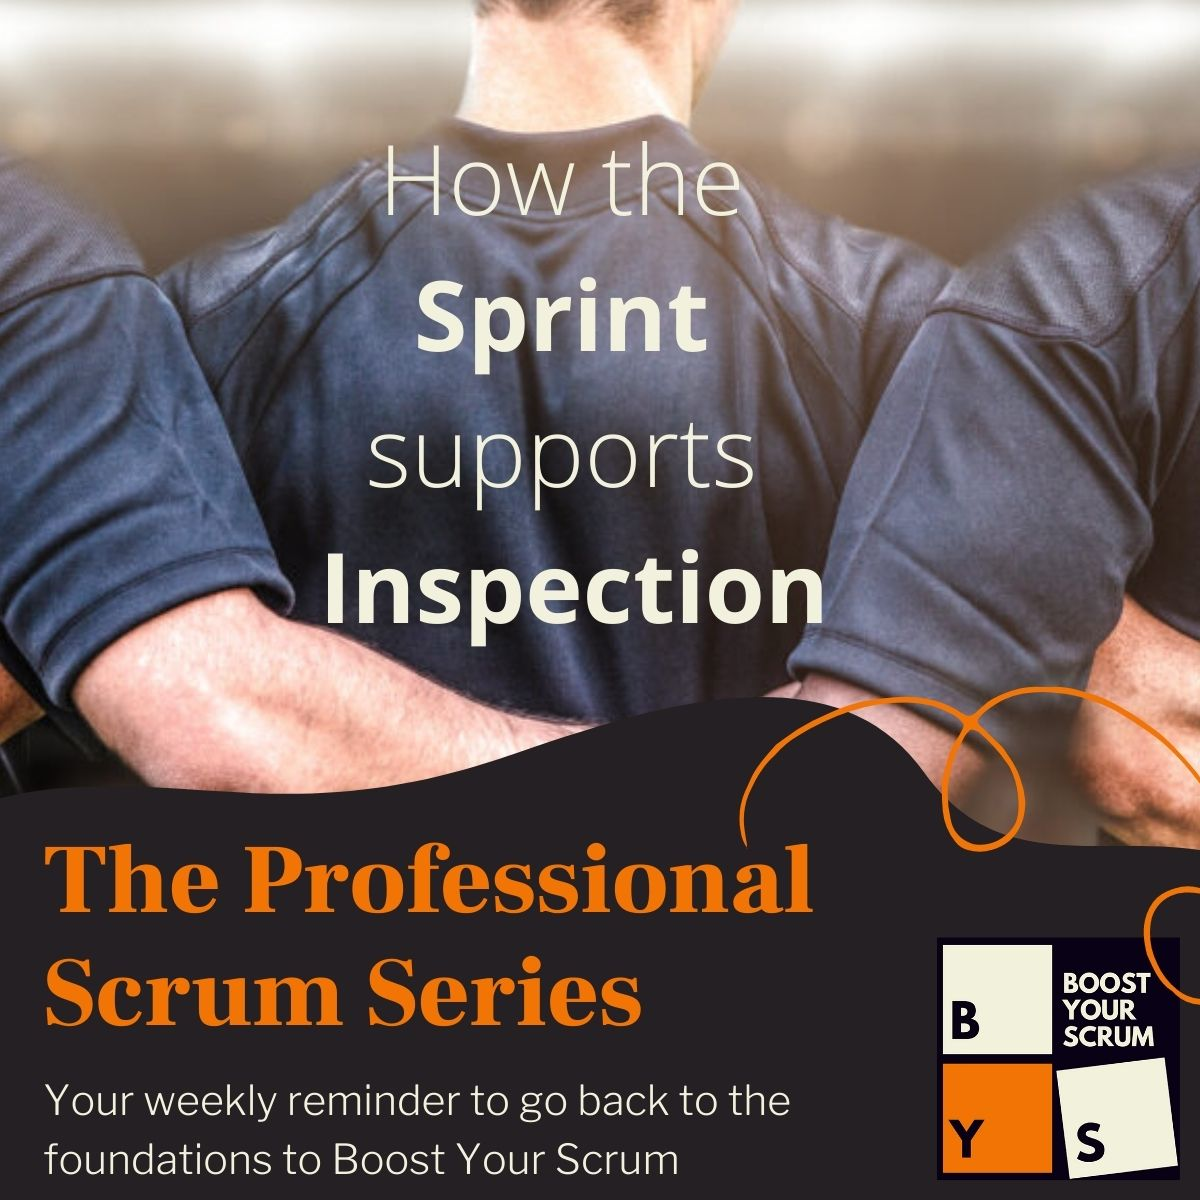 How the Daily Scrum supports Inspection